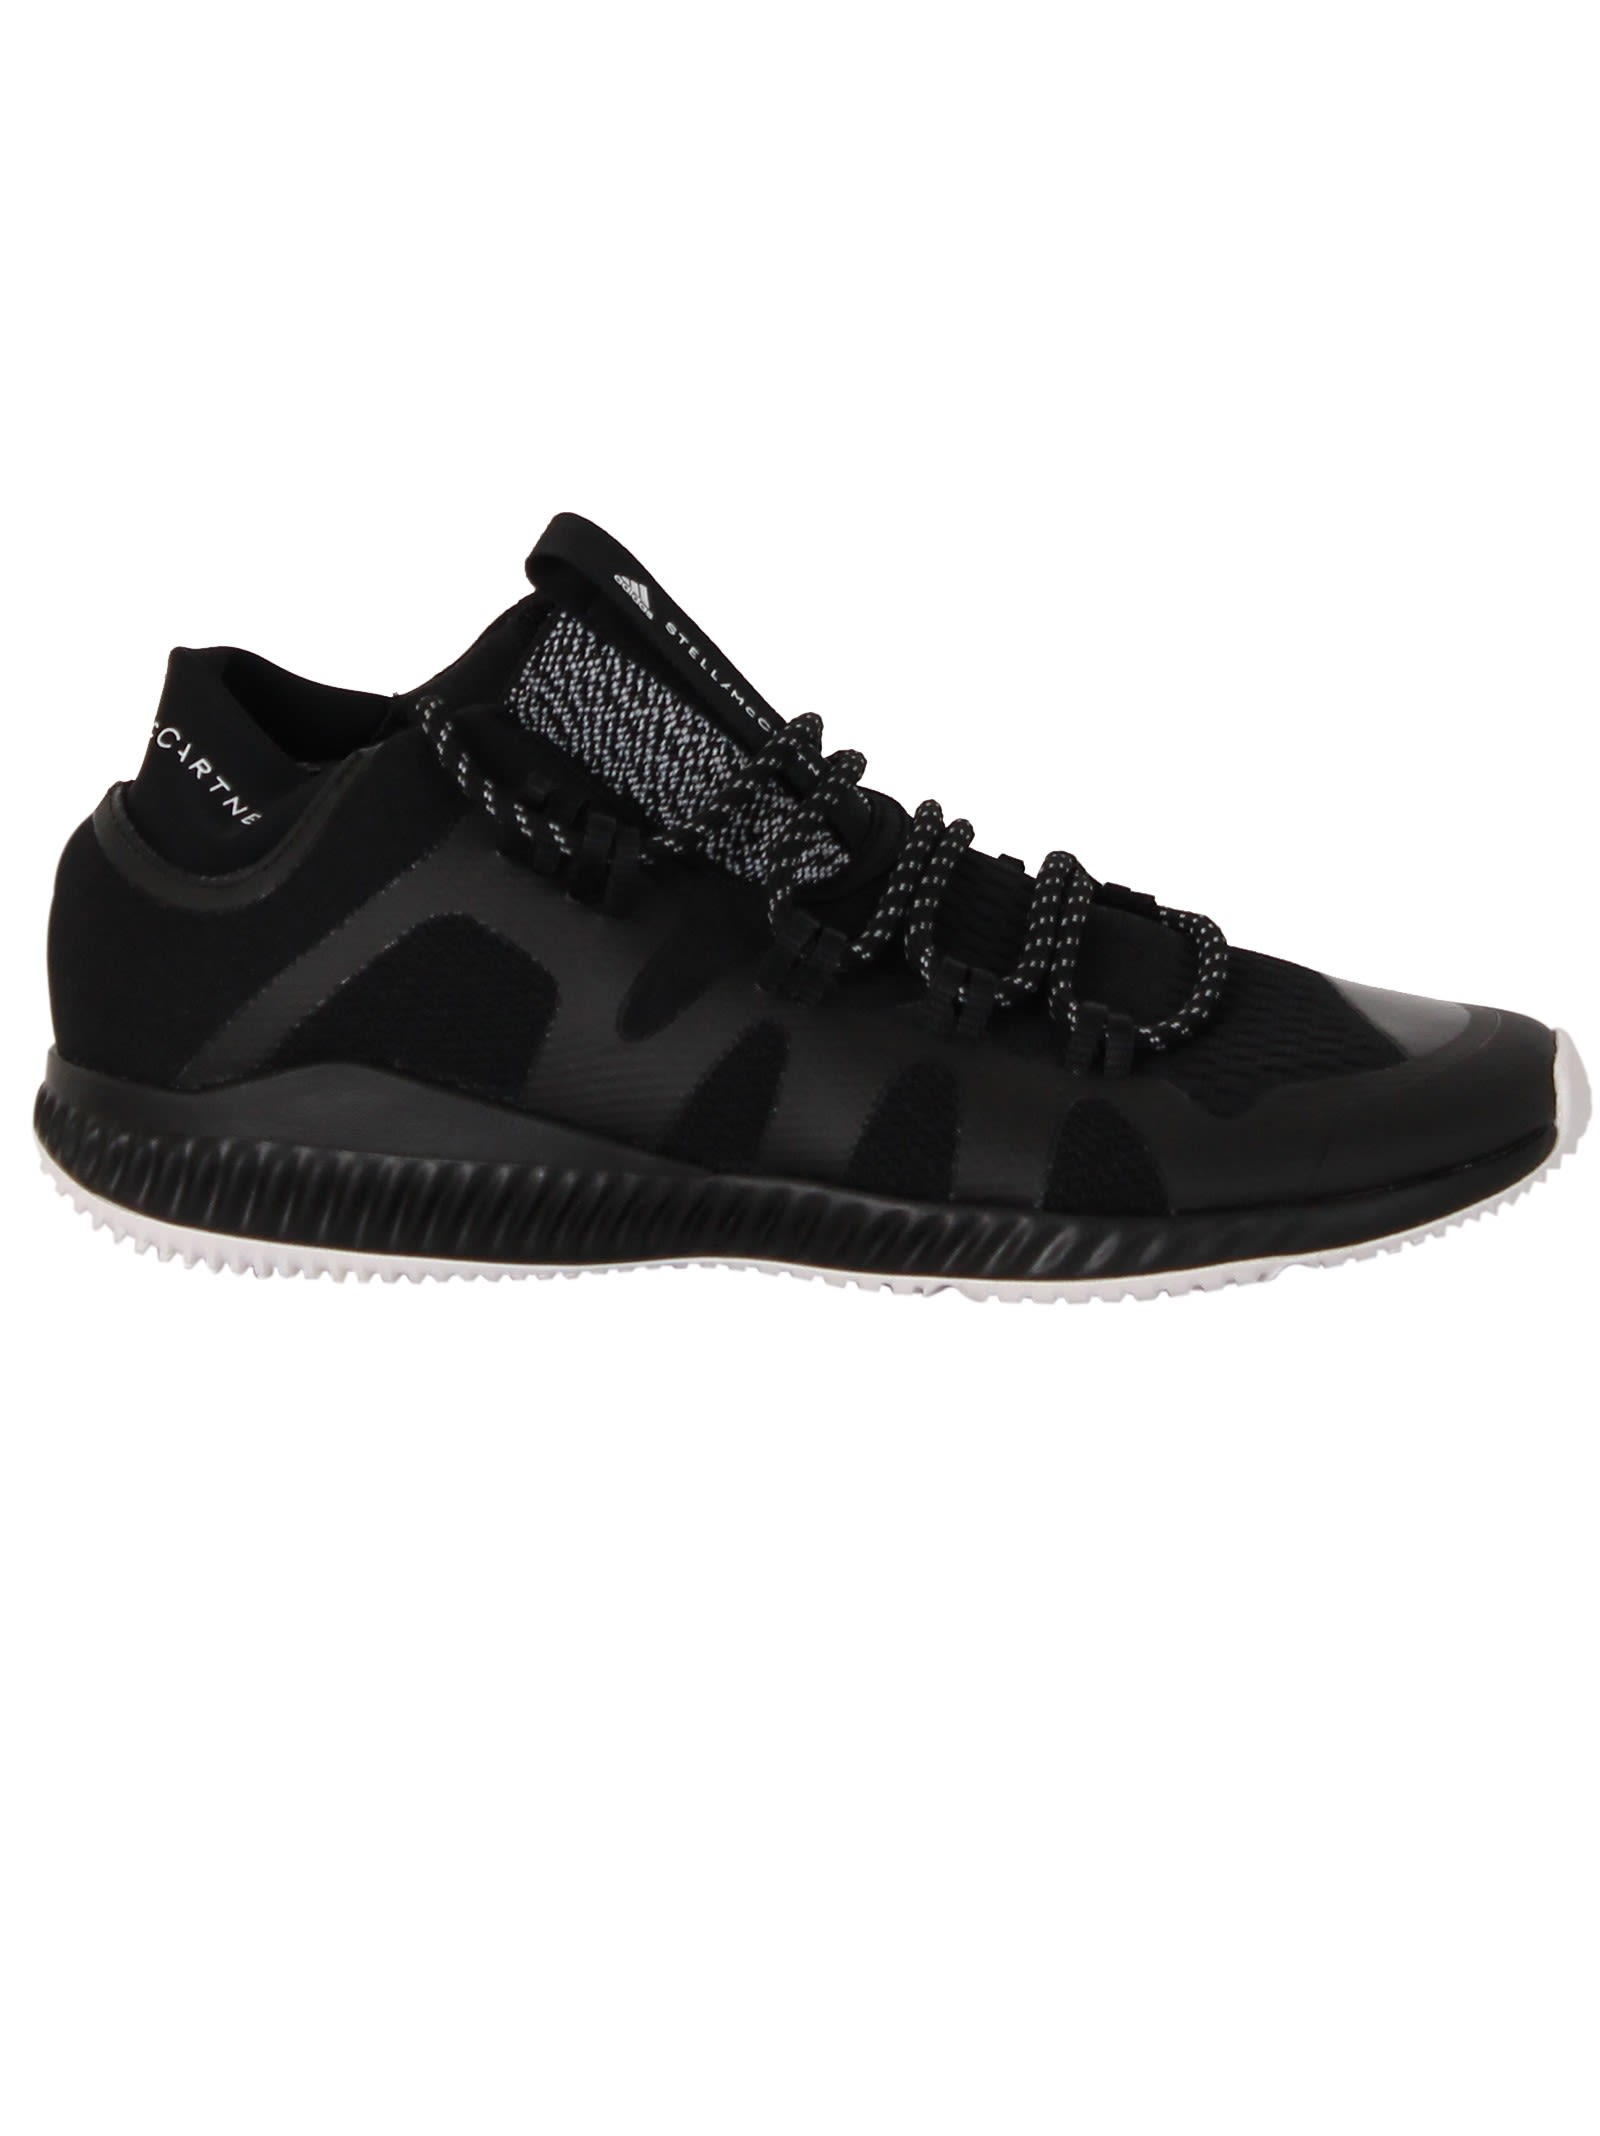 Adidas by Stella McCartney Black Crazy Train Low Sneakers